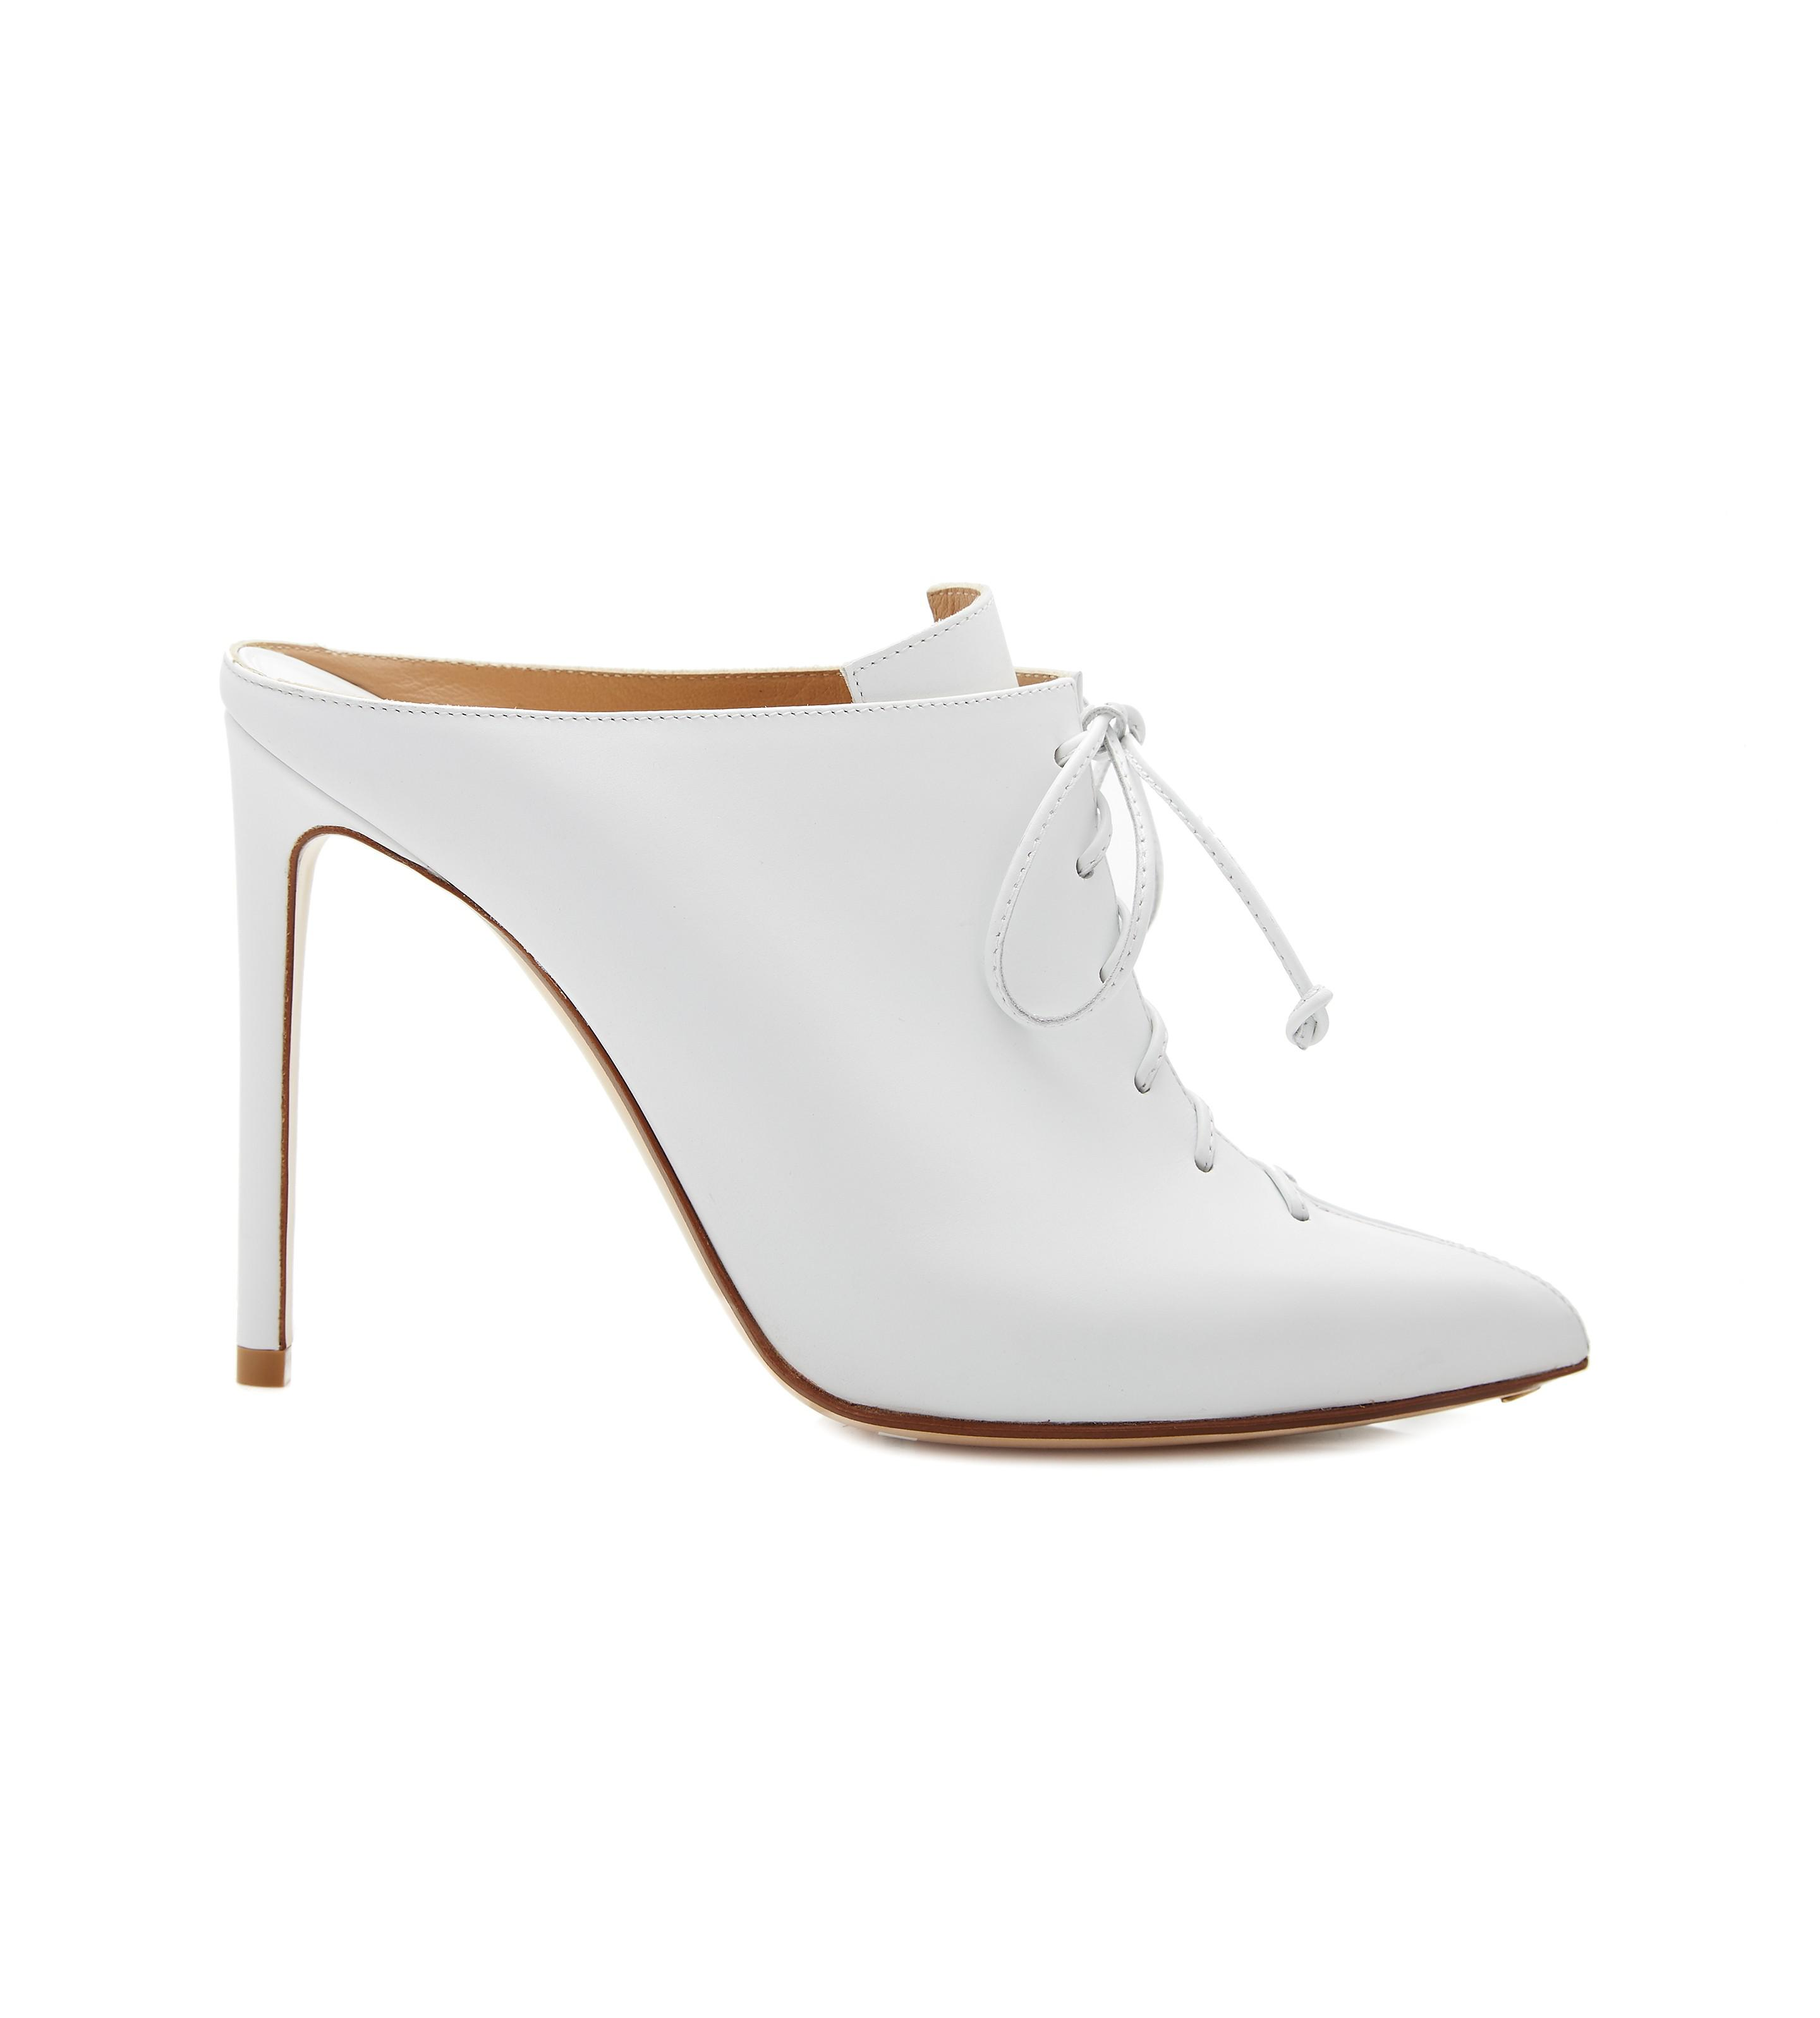 Lace-up Leather Mules - White Francesco Russo sXv0q3FR